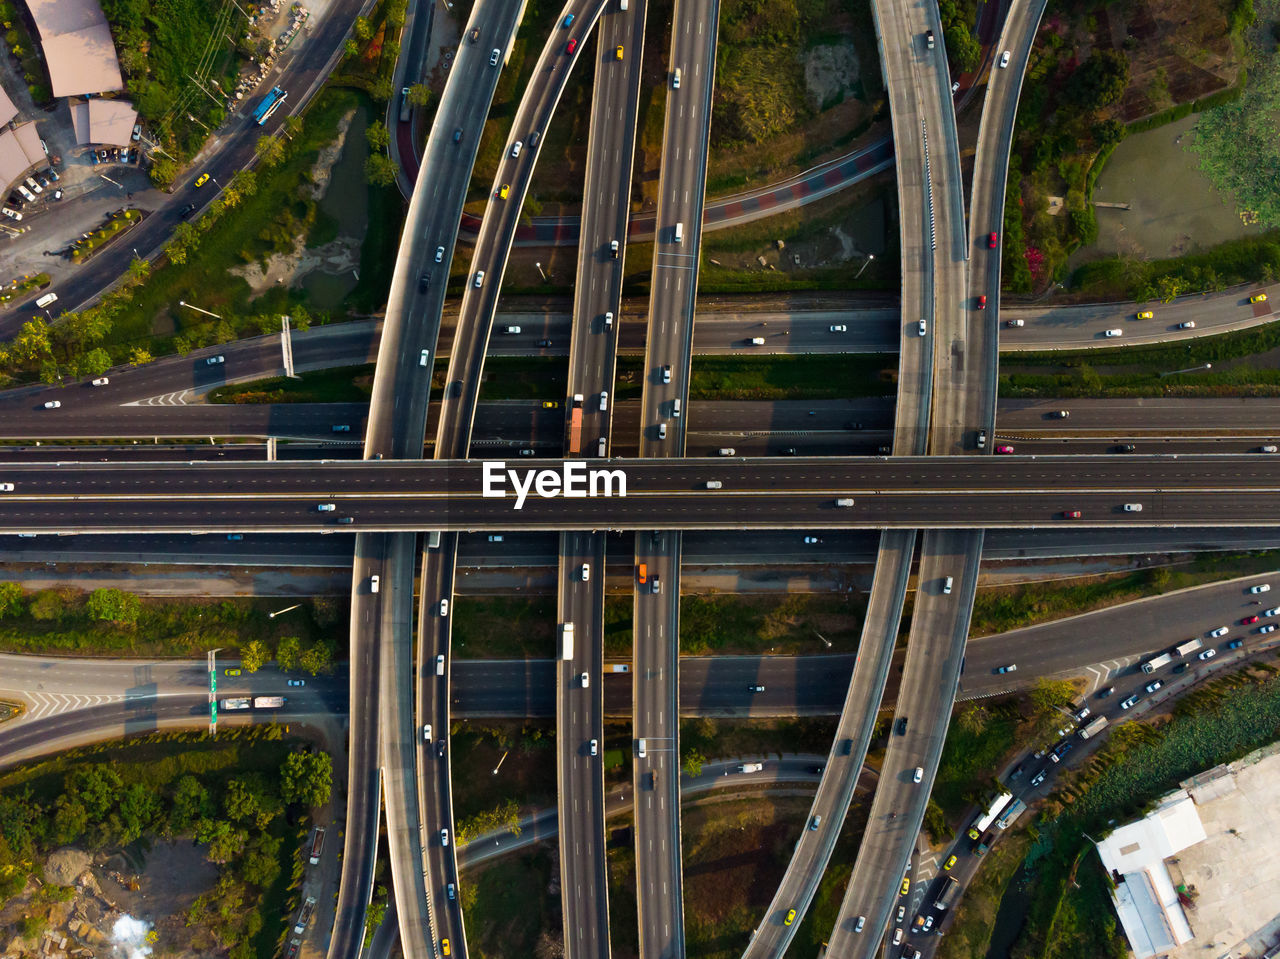 road, architecture, city, transportation, built structure, no people, connection, car, outdoors, high angle view, motor vehicle, highway, mode of transportation, street, building exterior, nature, plant, land vehicle, motion, day, multiple lane highway, overpass, complexity